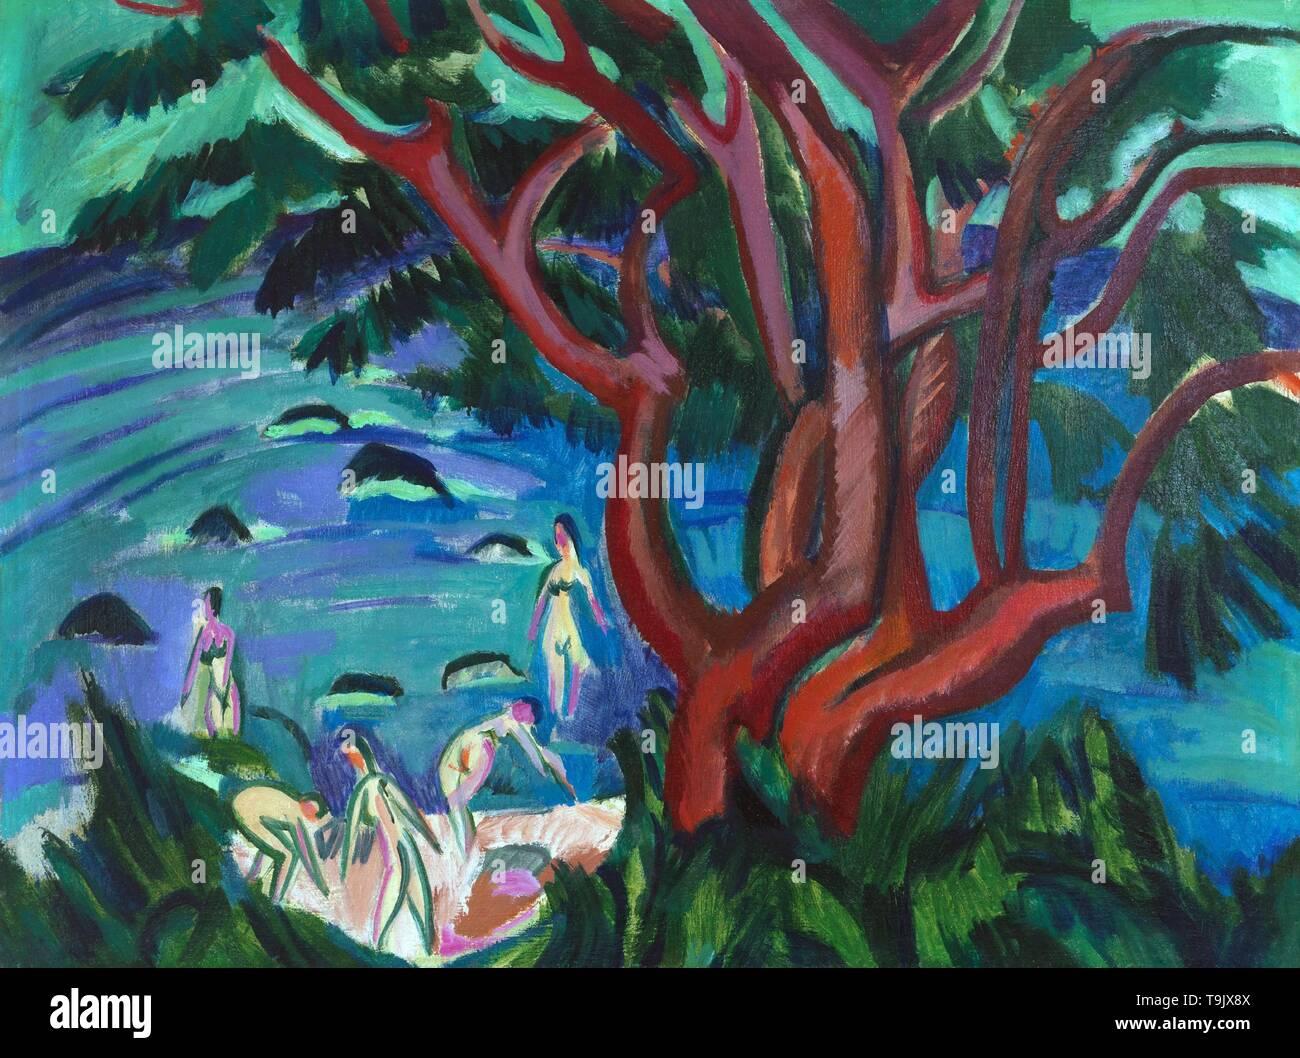 Red tree at the beach. Museum: PRIVATE COLLECTION. Author: ERNST LUDWIG KIRCHNER. - Stock Image